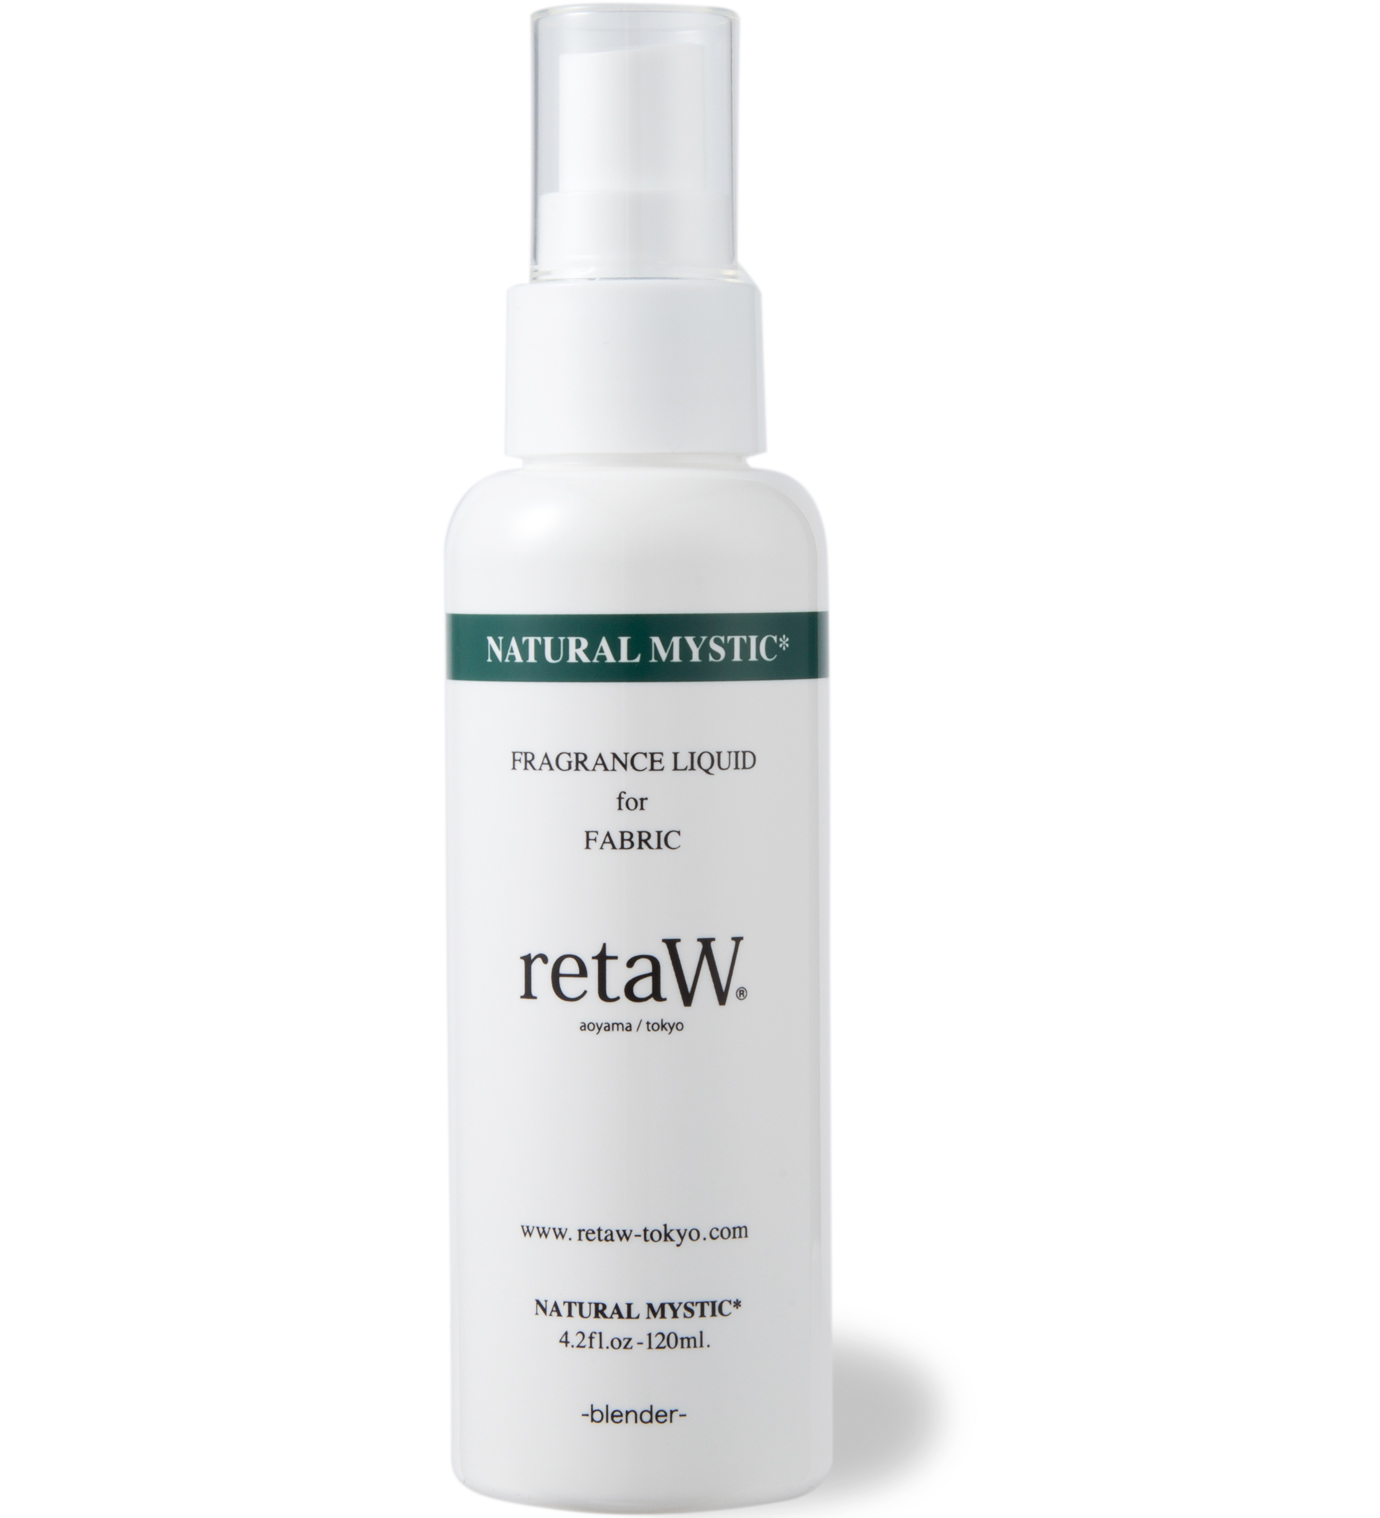 retaW Natural Mystic Fragrance Liquid for Fabric